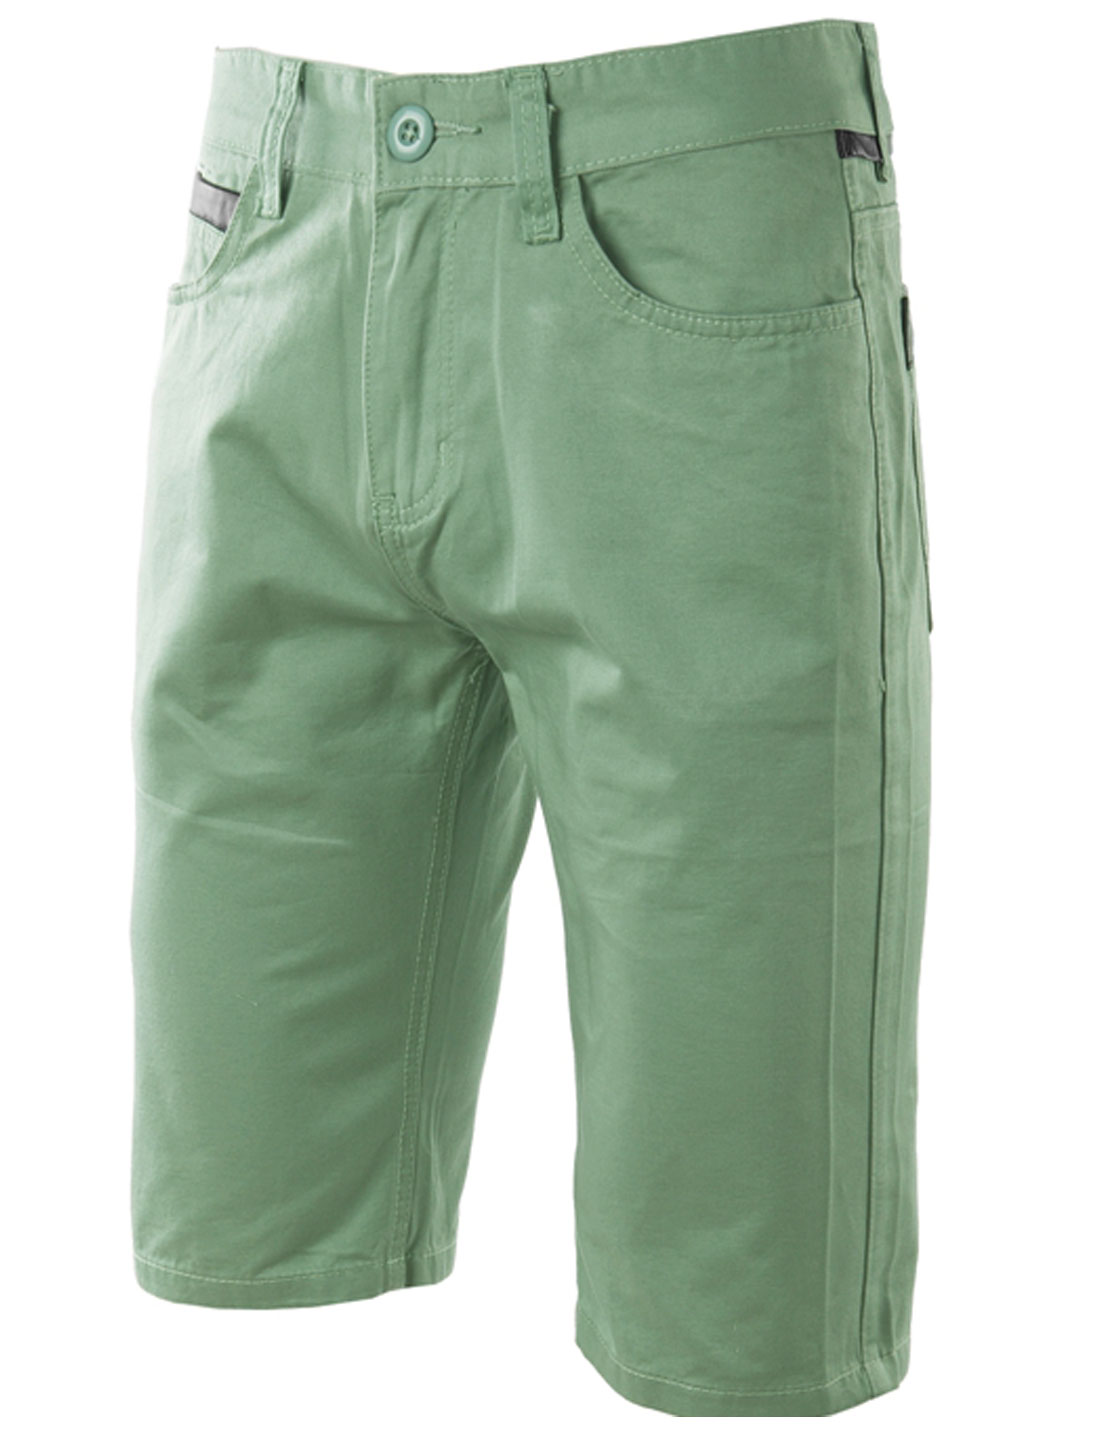 Hip Pockets Zip Fly Leather Trimmed Pea Green W32 Chino Shorts for Man